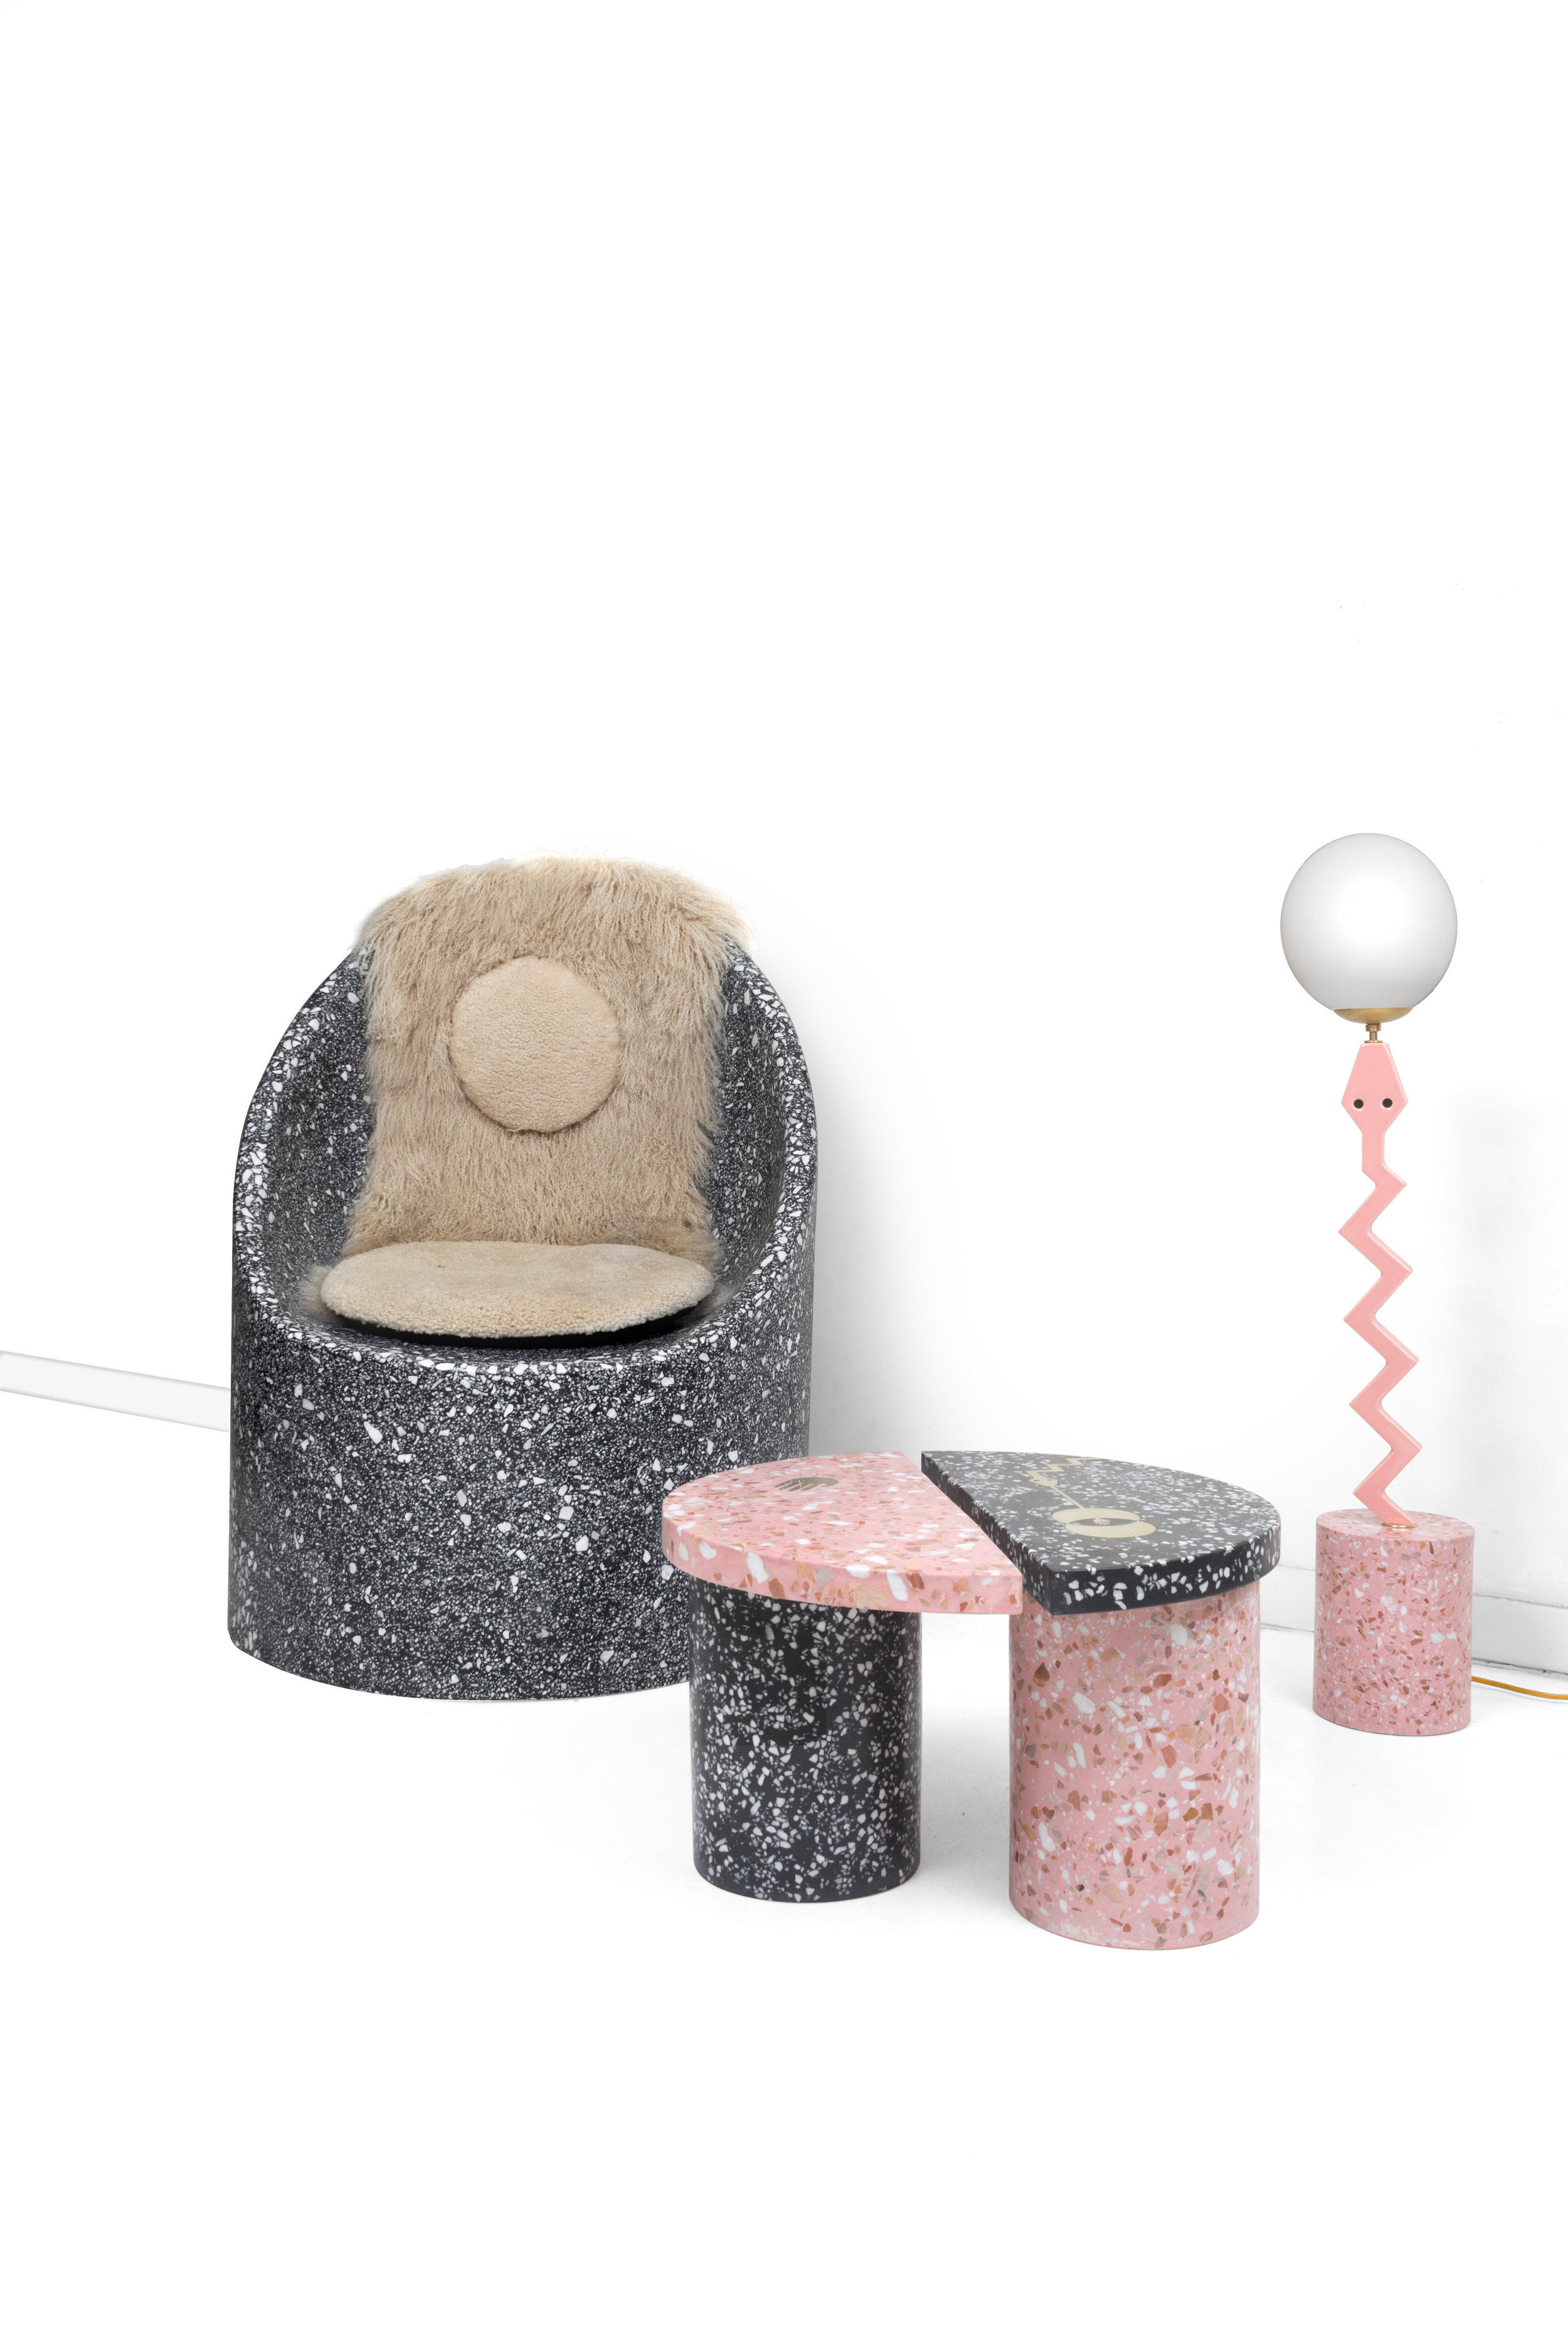 Cozy Cave Chair, Yin Yang Table, Serpentine Heart Song Lamp